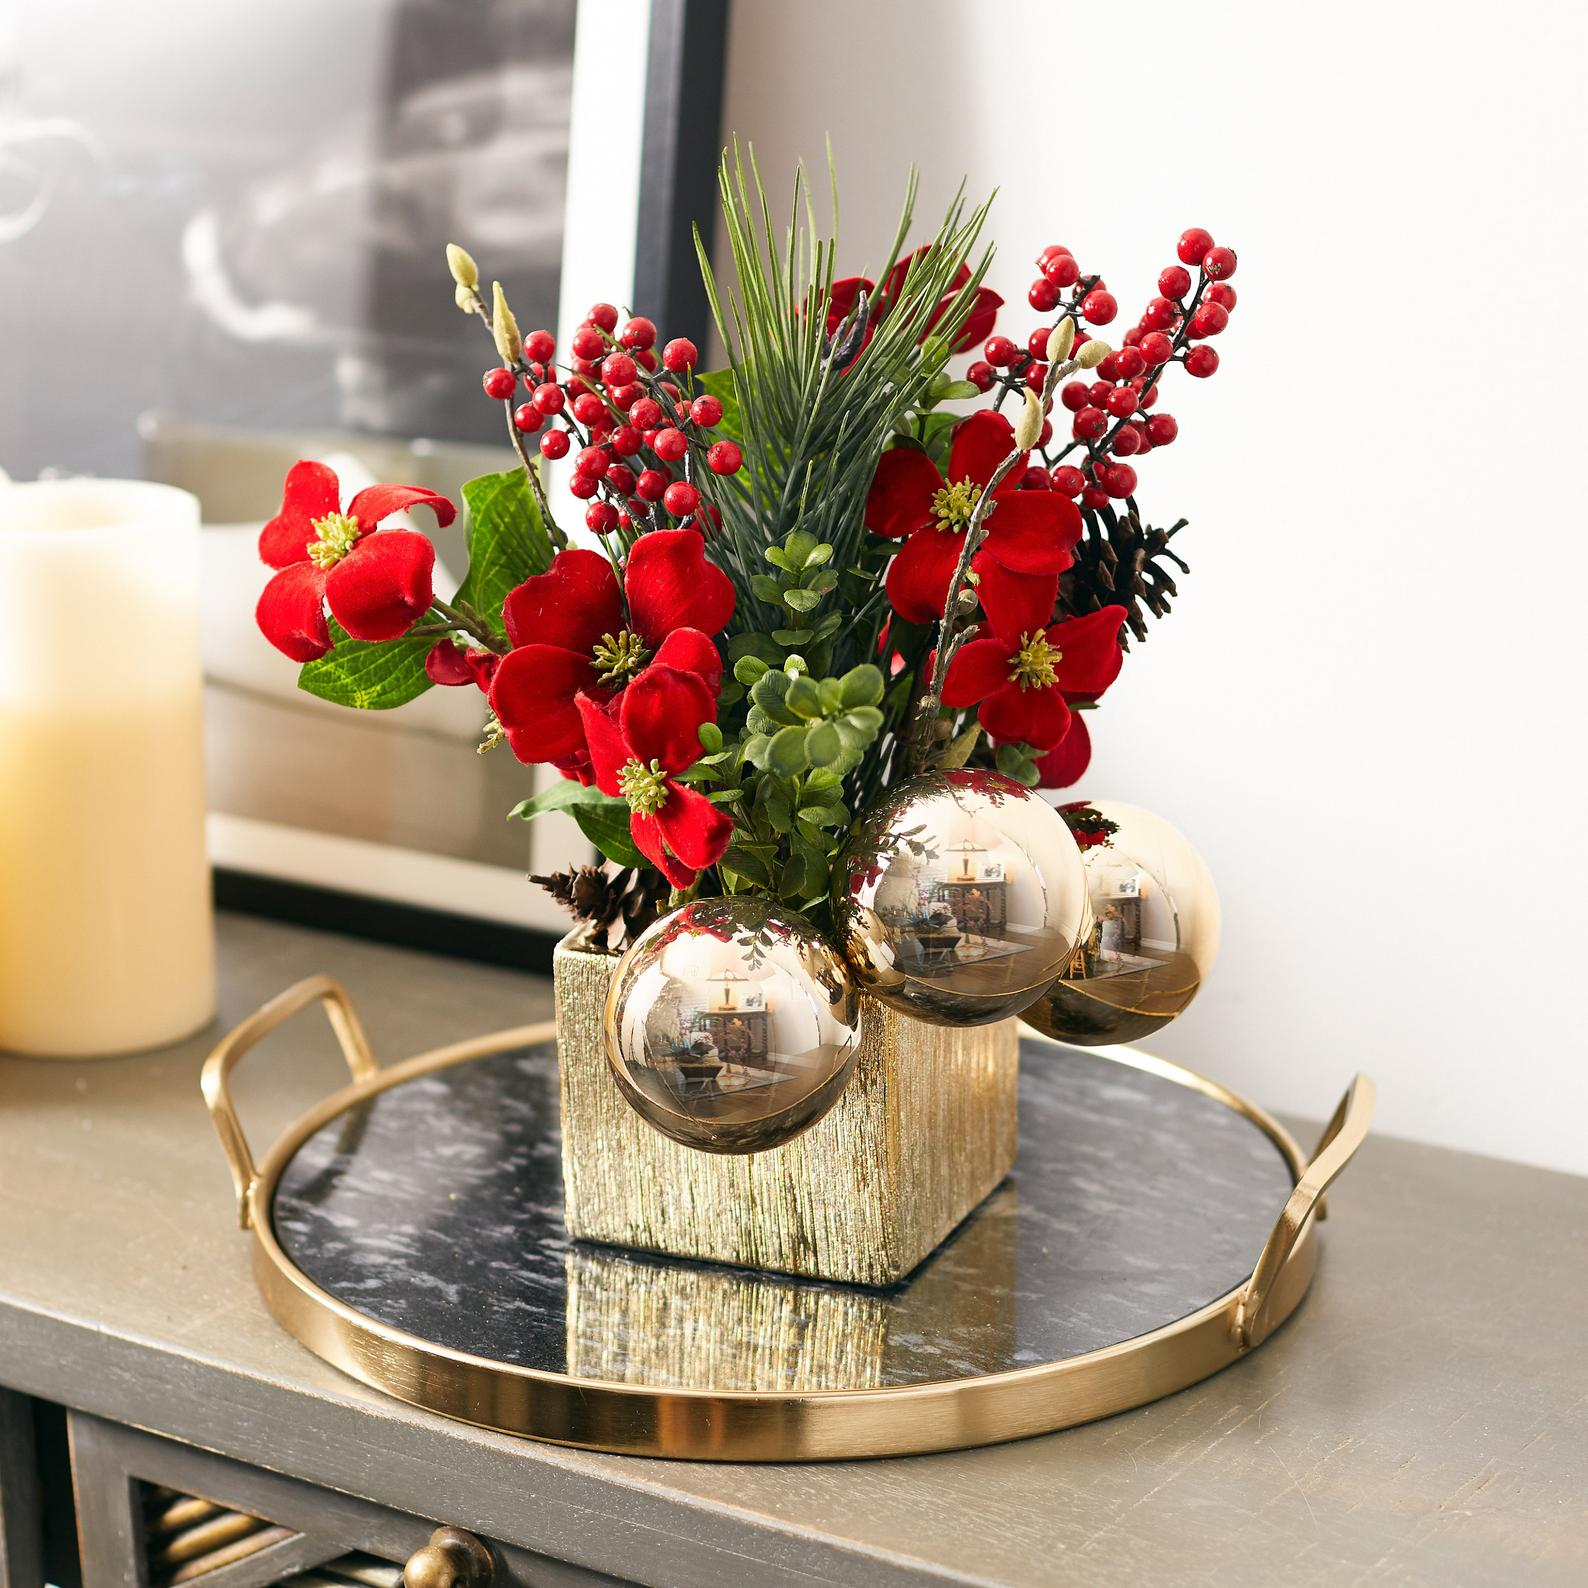 Get a jumpstart on your holiday floral arrangement by investing in a high-quality, lifelike faux. This elegant find features red velvet flowers, a metallic ceramic vase and gold ornaments for a especially festive touch.Buy it: $89; etsy.com